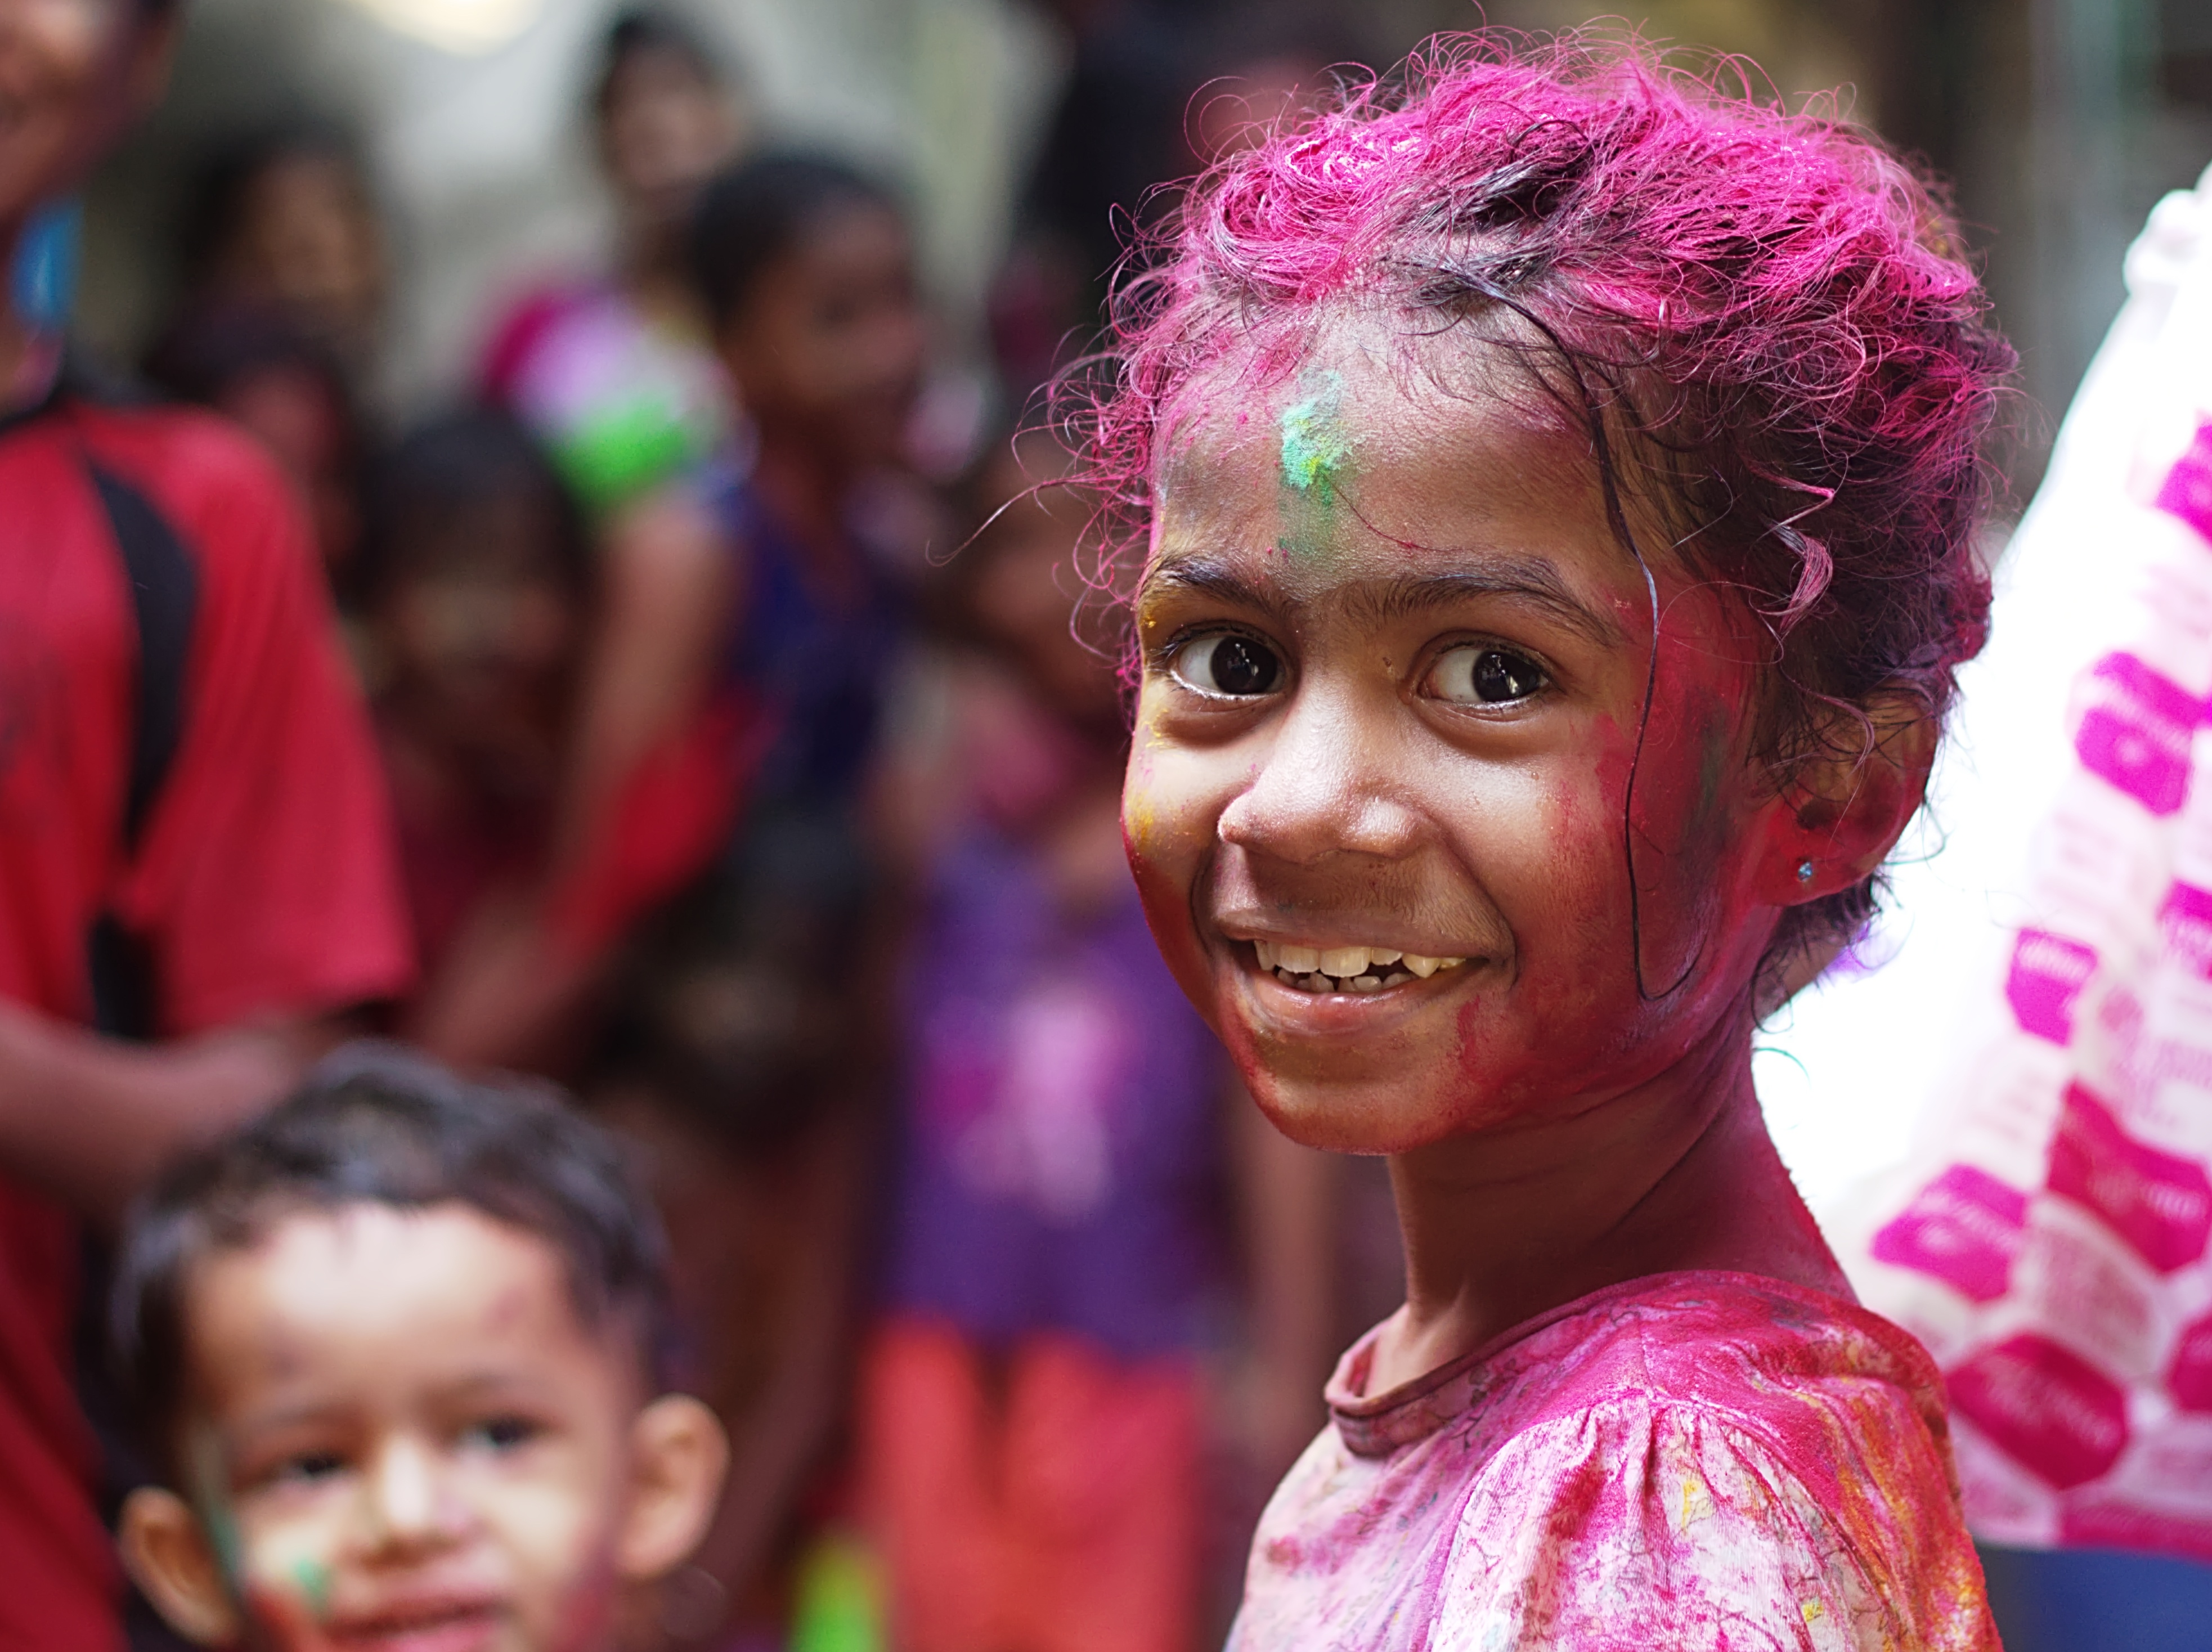 A young girl at Holi, the festival of colors.